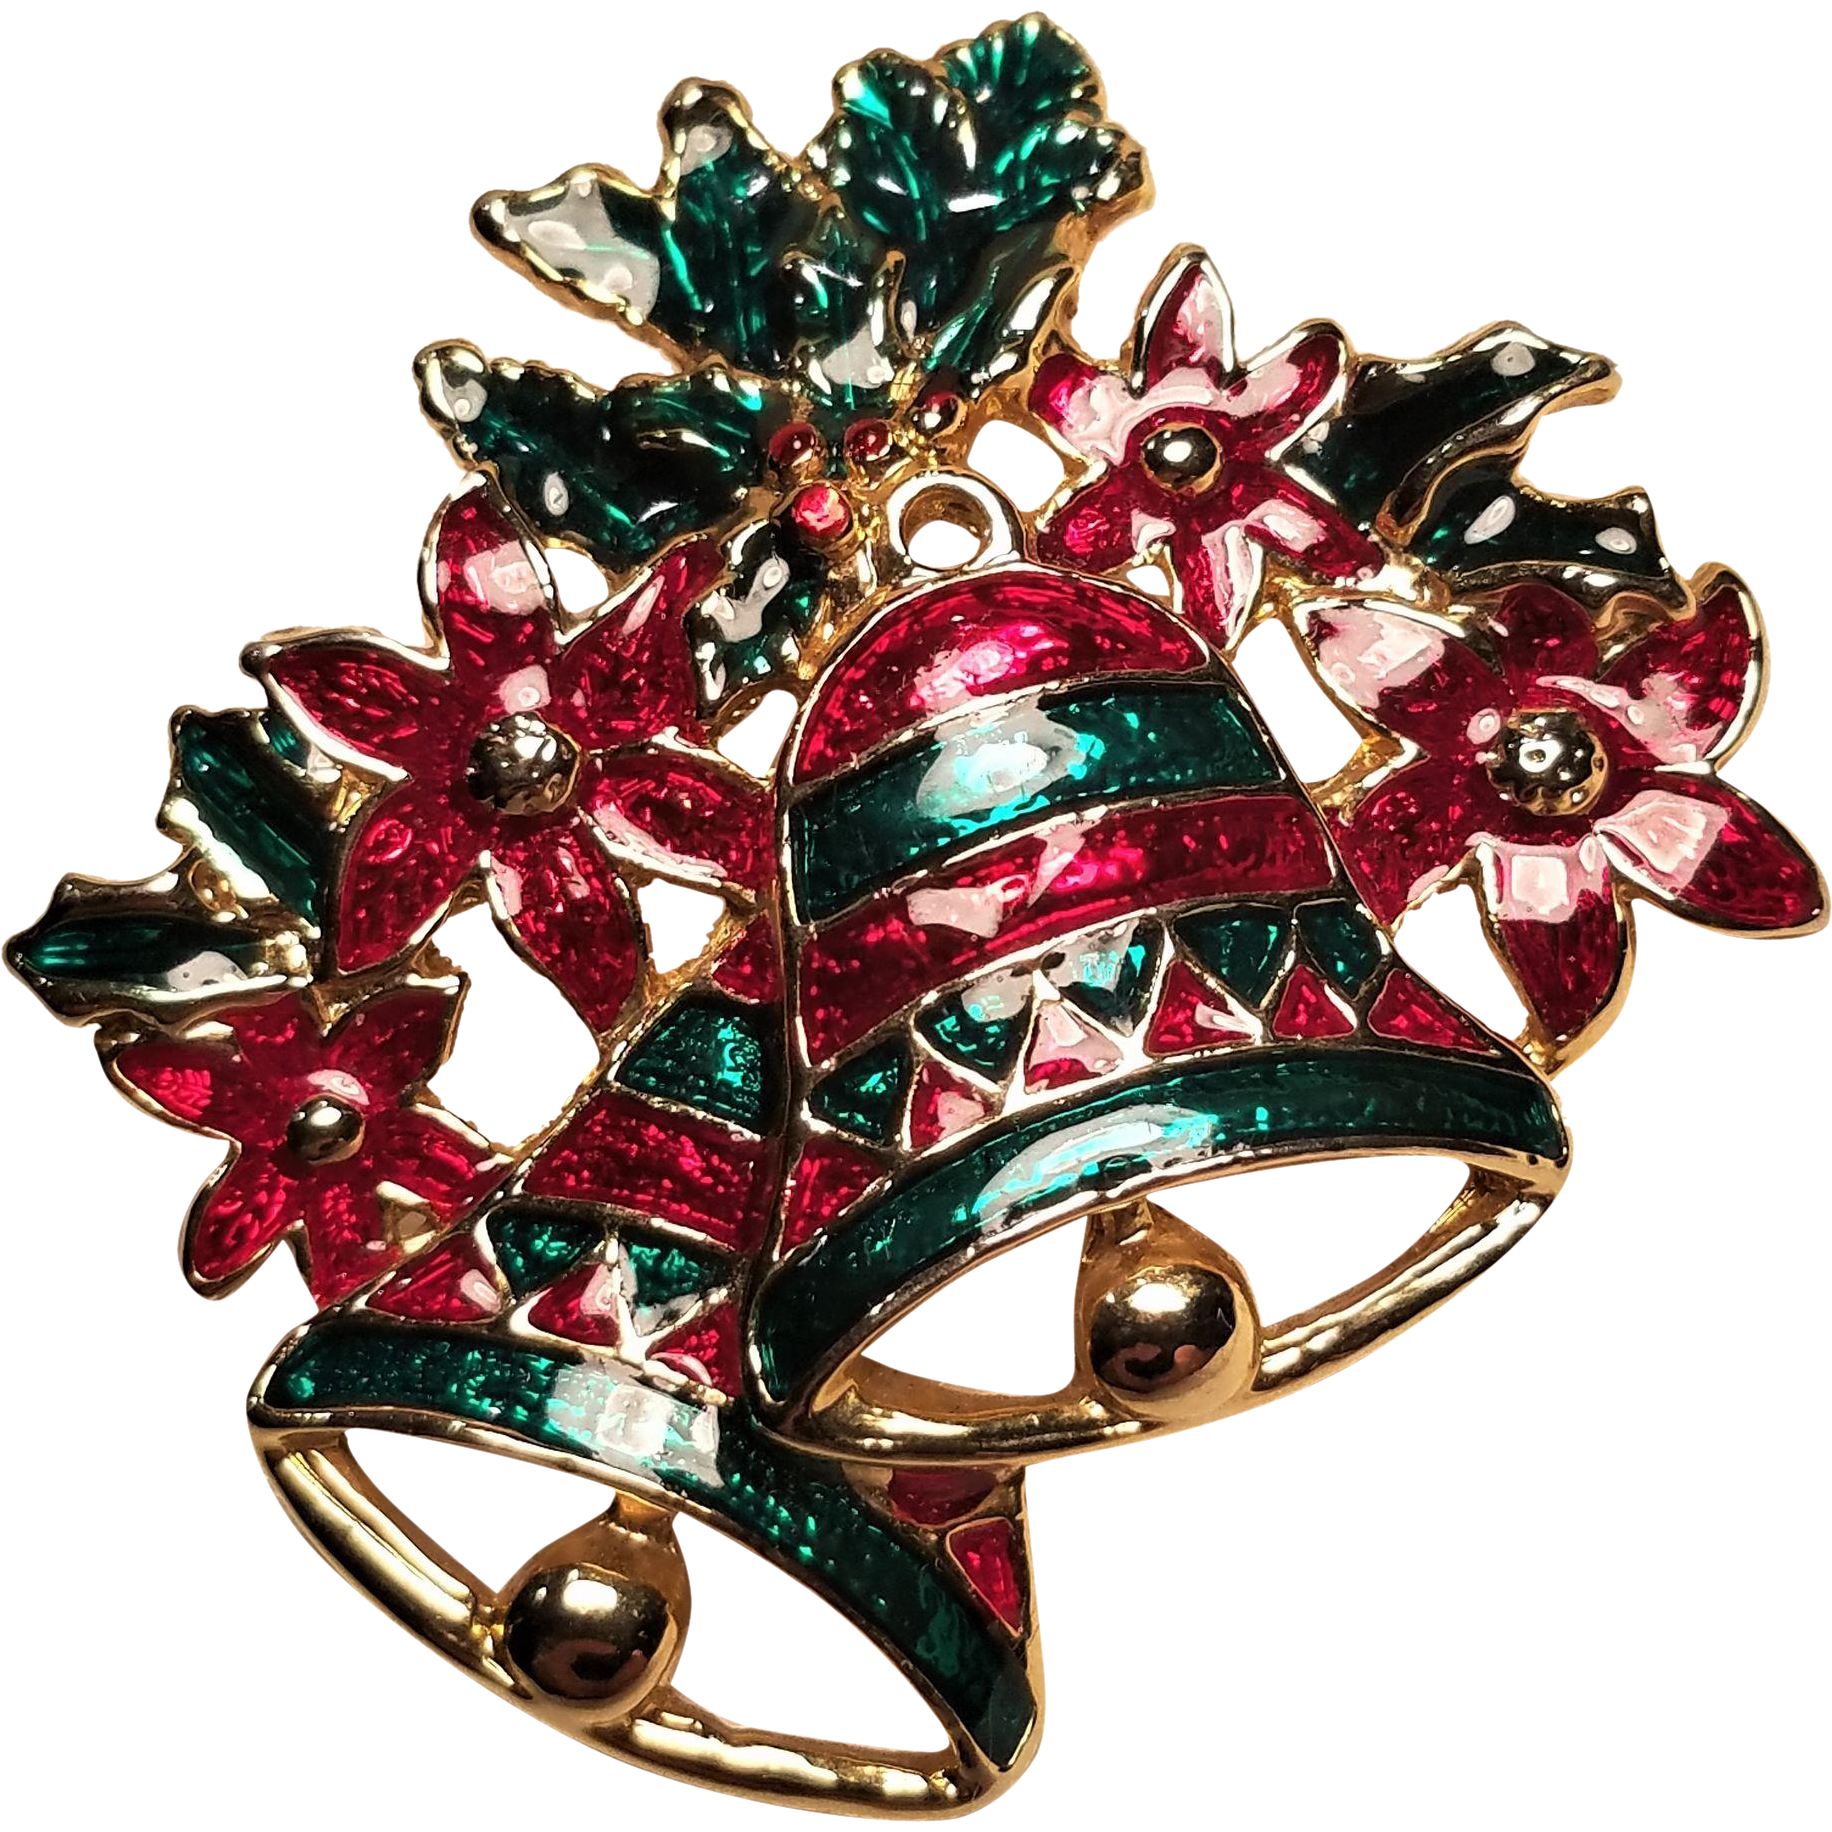 Vintage Christmas Pin Ringing Bell's With Holly And Poinsettias